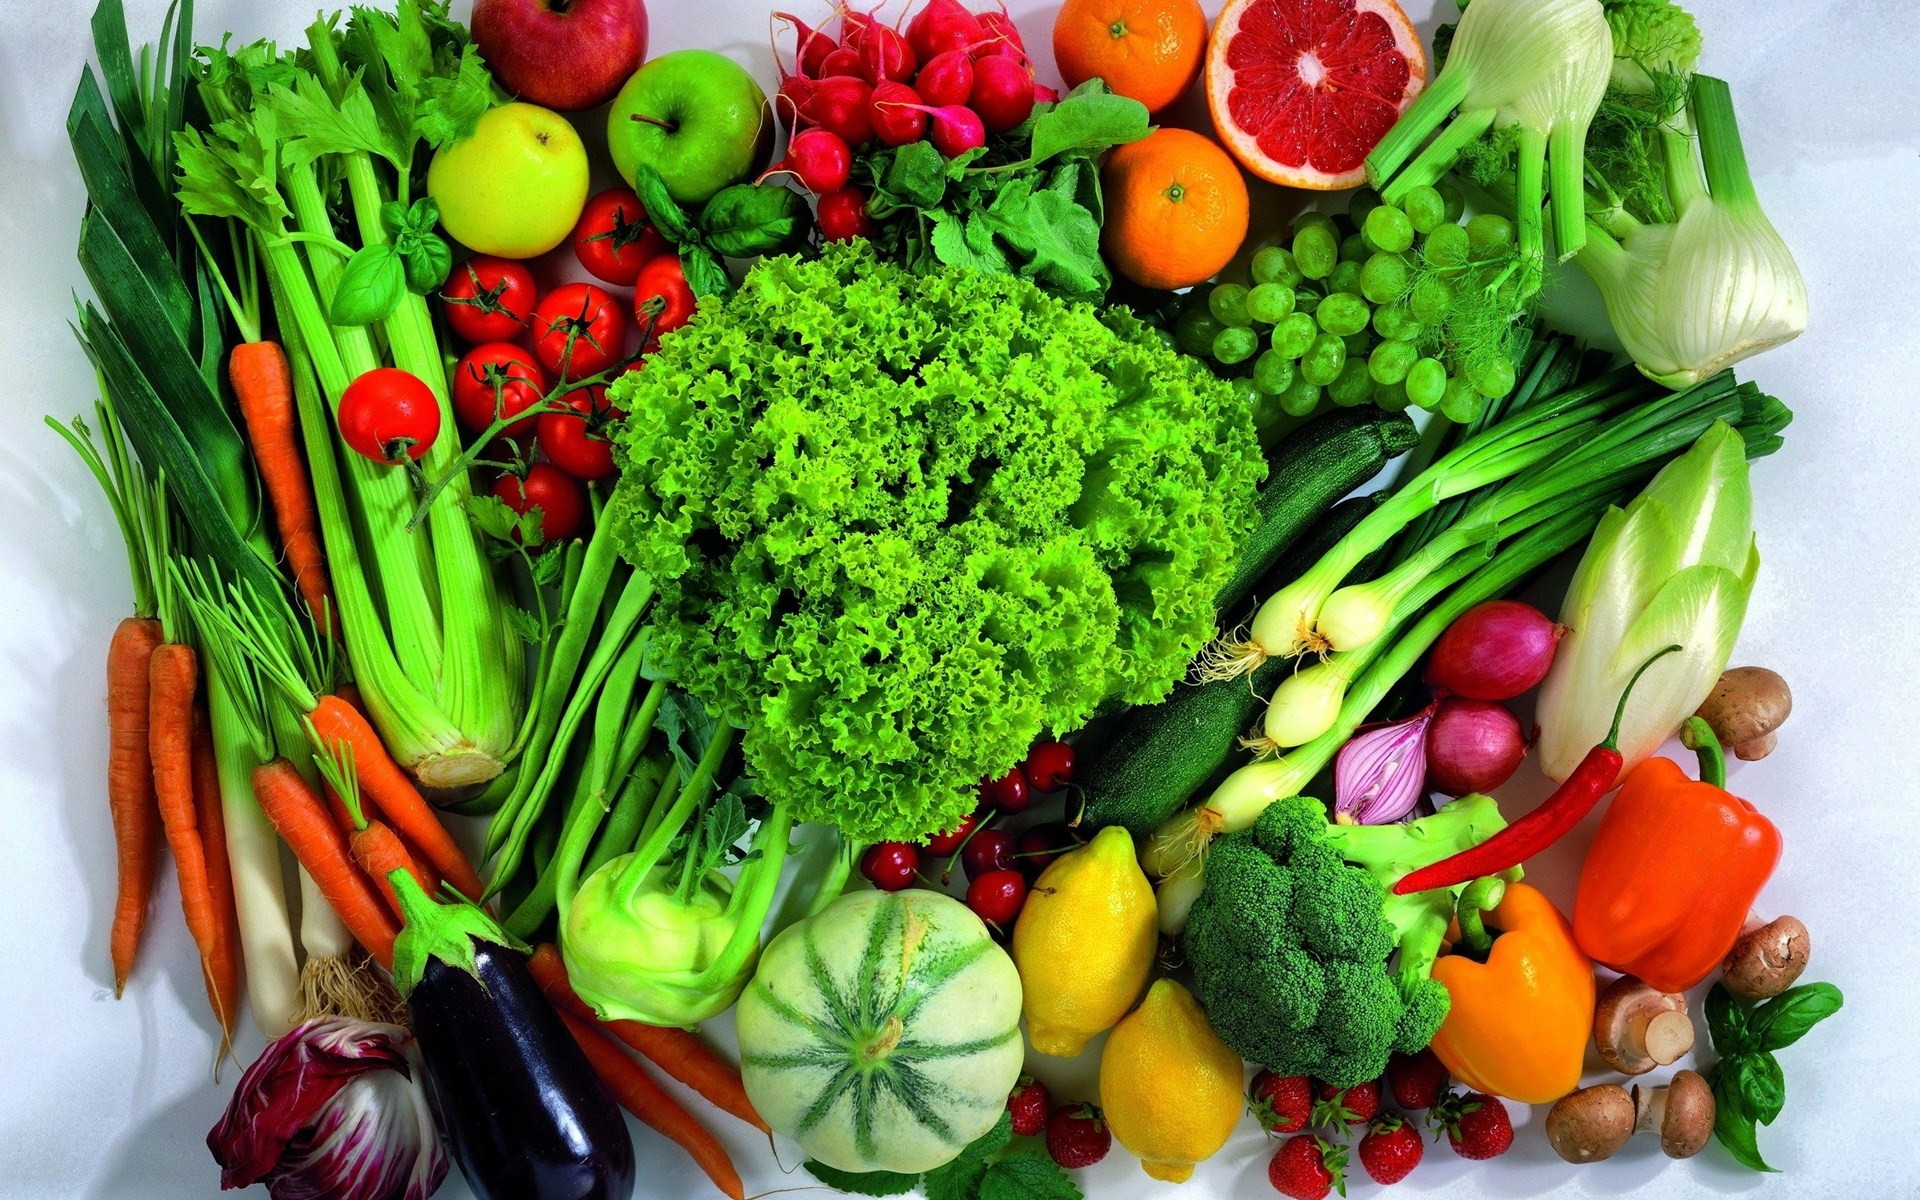 Nutrition Wallpaper Posted By Ethan Walker